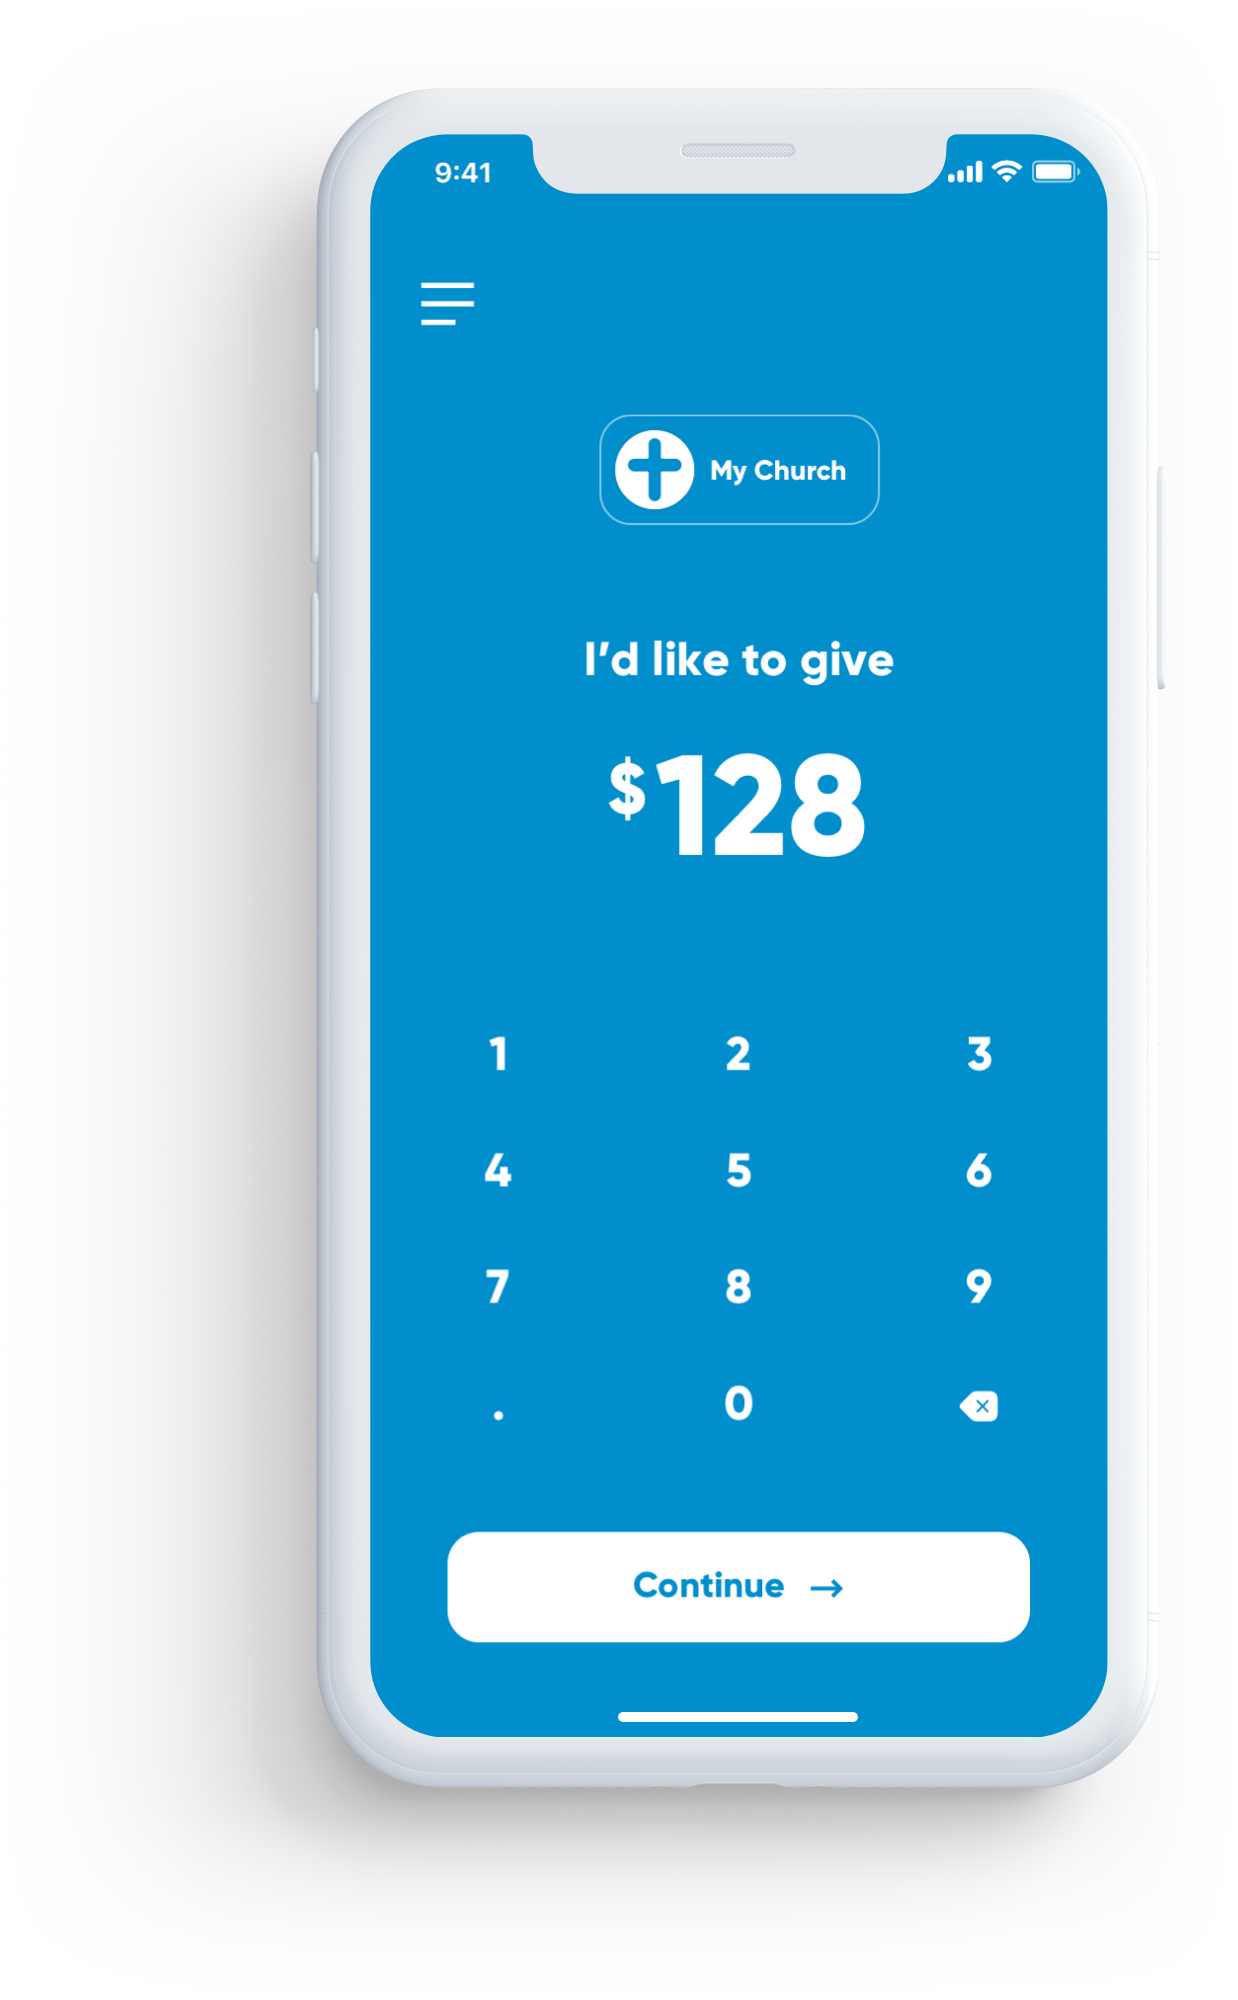 iPhone app showing the giving screen